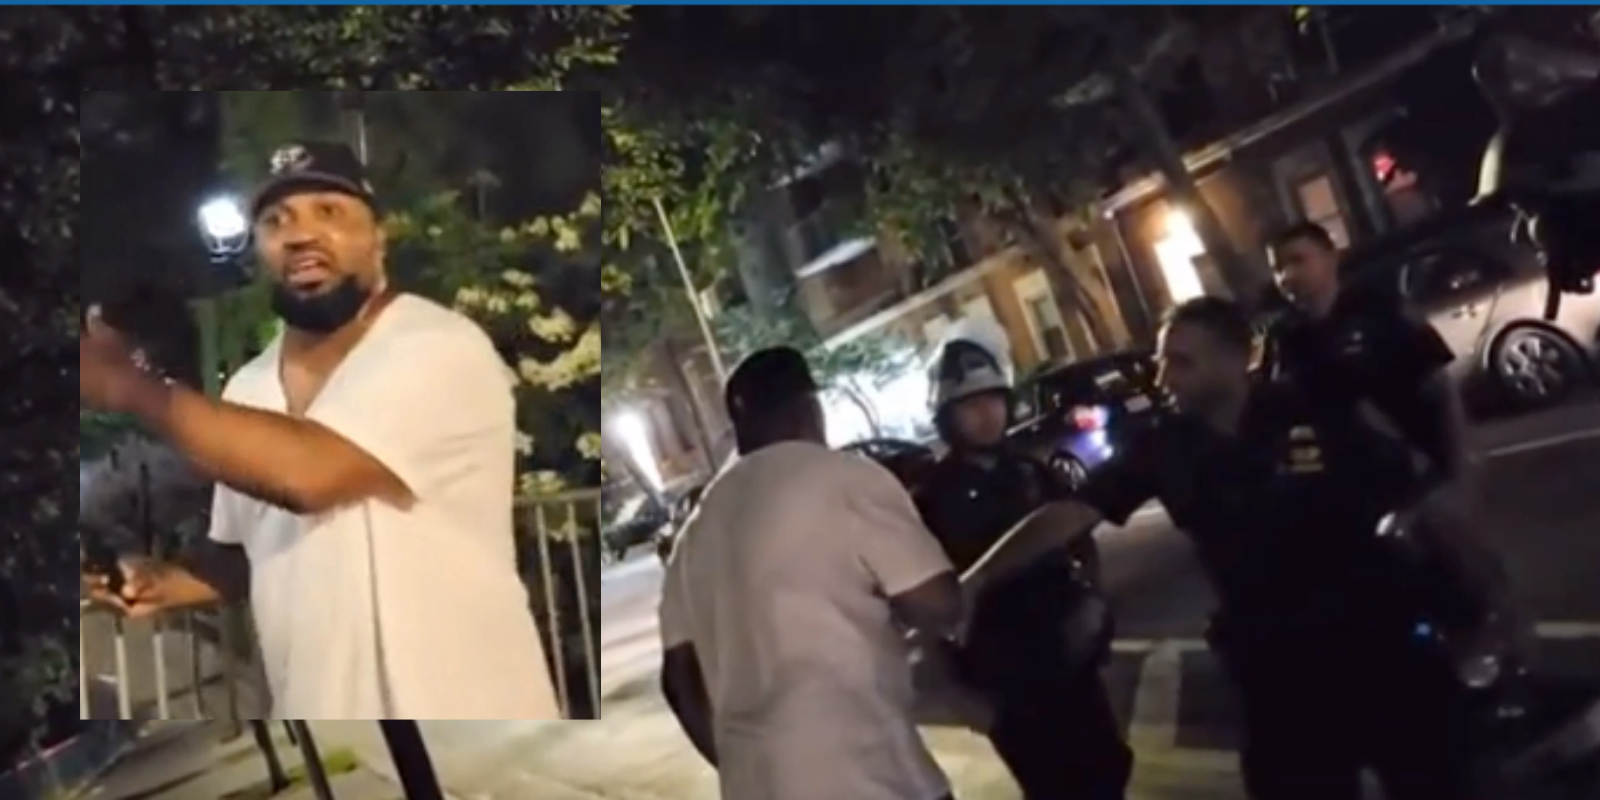 WATCH: Black man confronts Asian police officer in NYC, calls him a racist slur, says 'black people can't be racist'